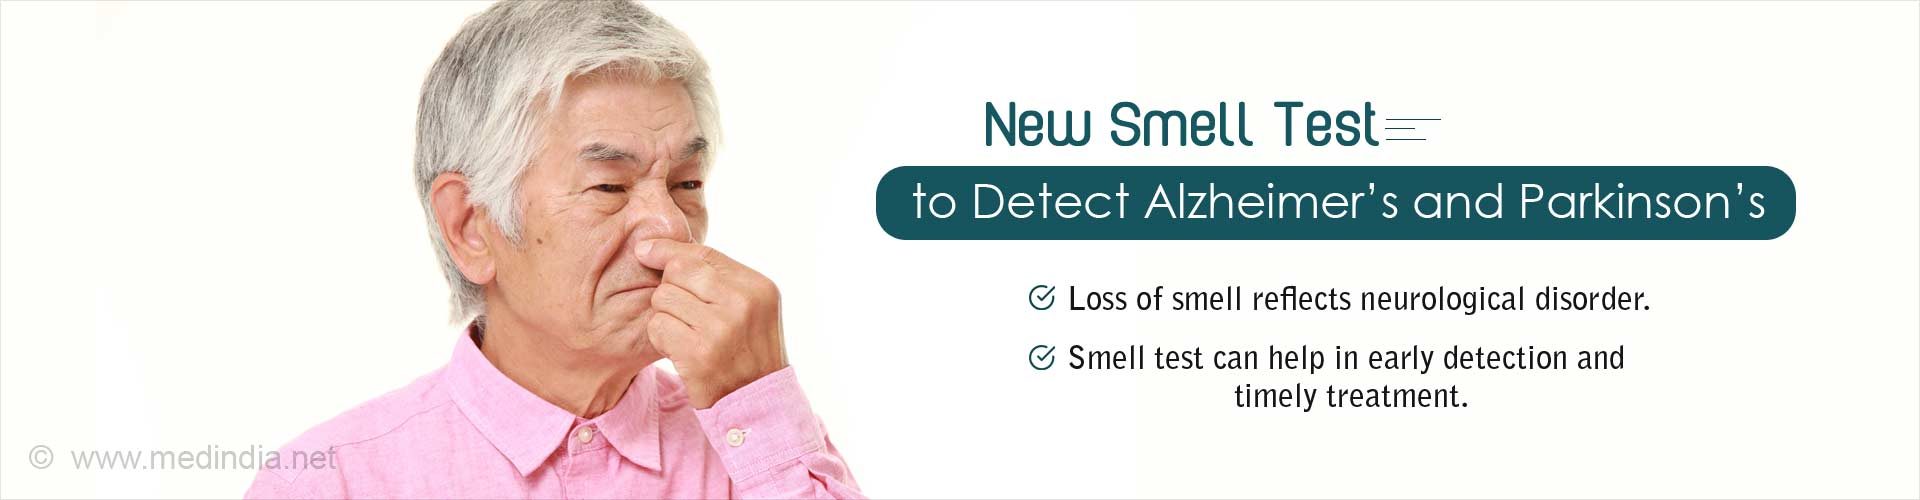 new smell test to detect alzheimer's and parkinson's